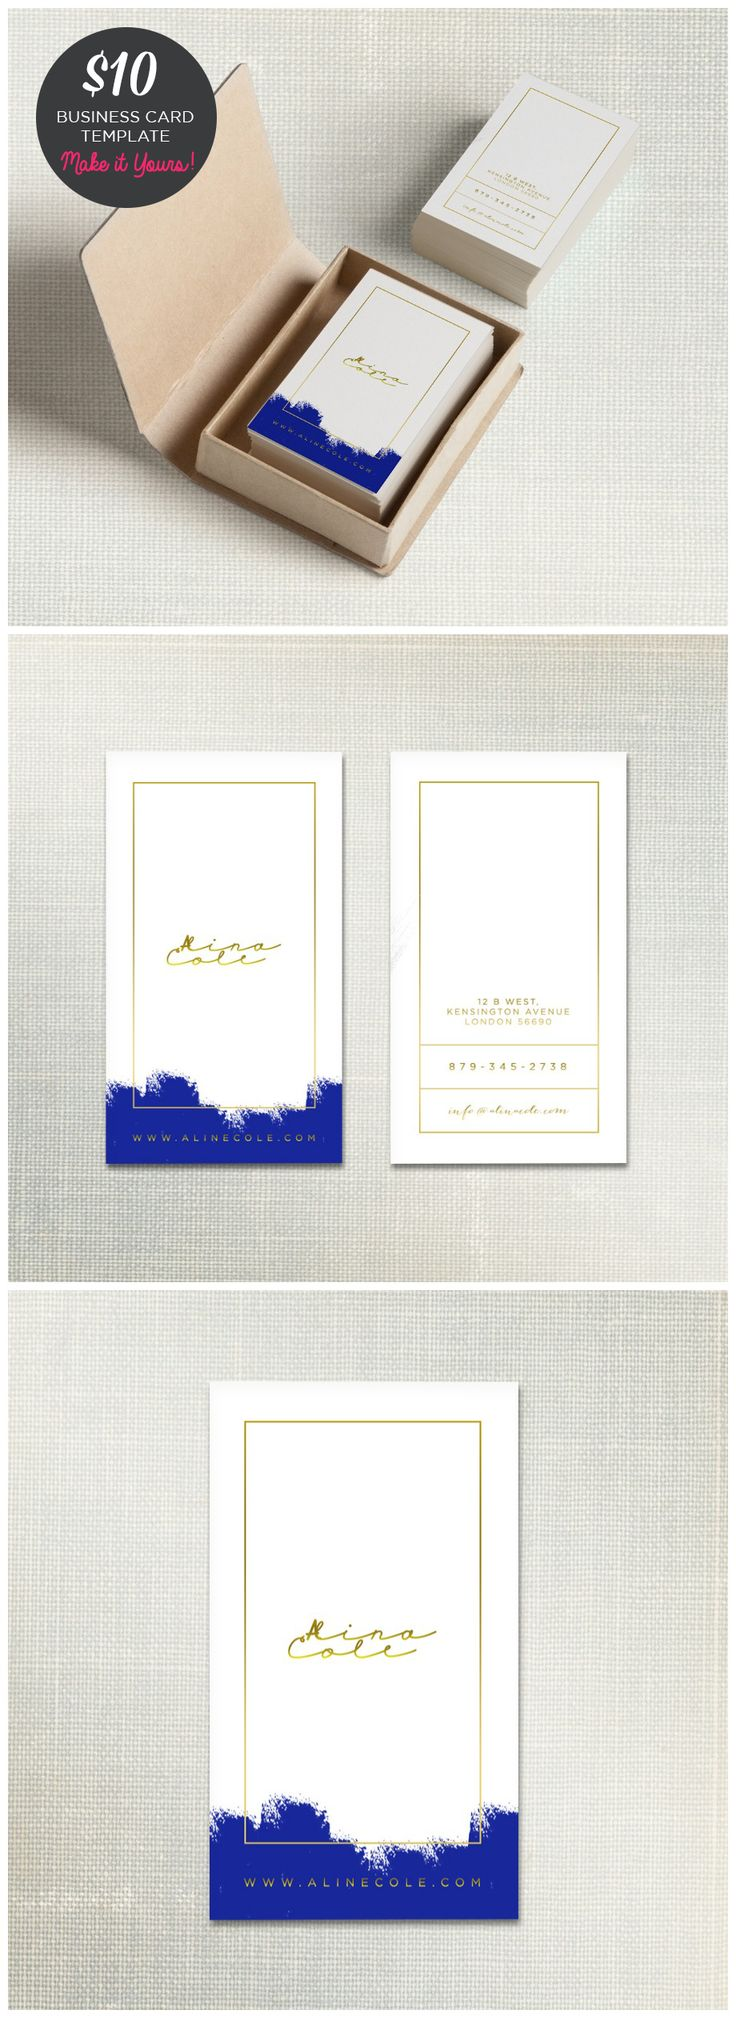 Elegant painted business card template - Make it yours! #businesscards